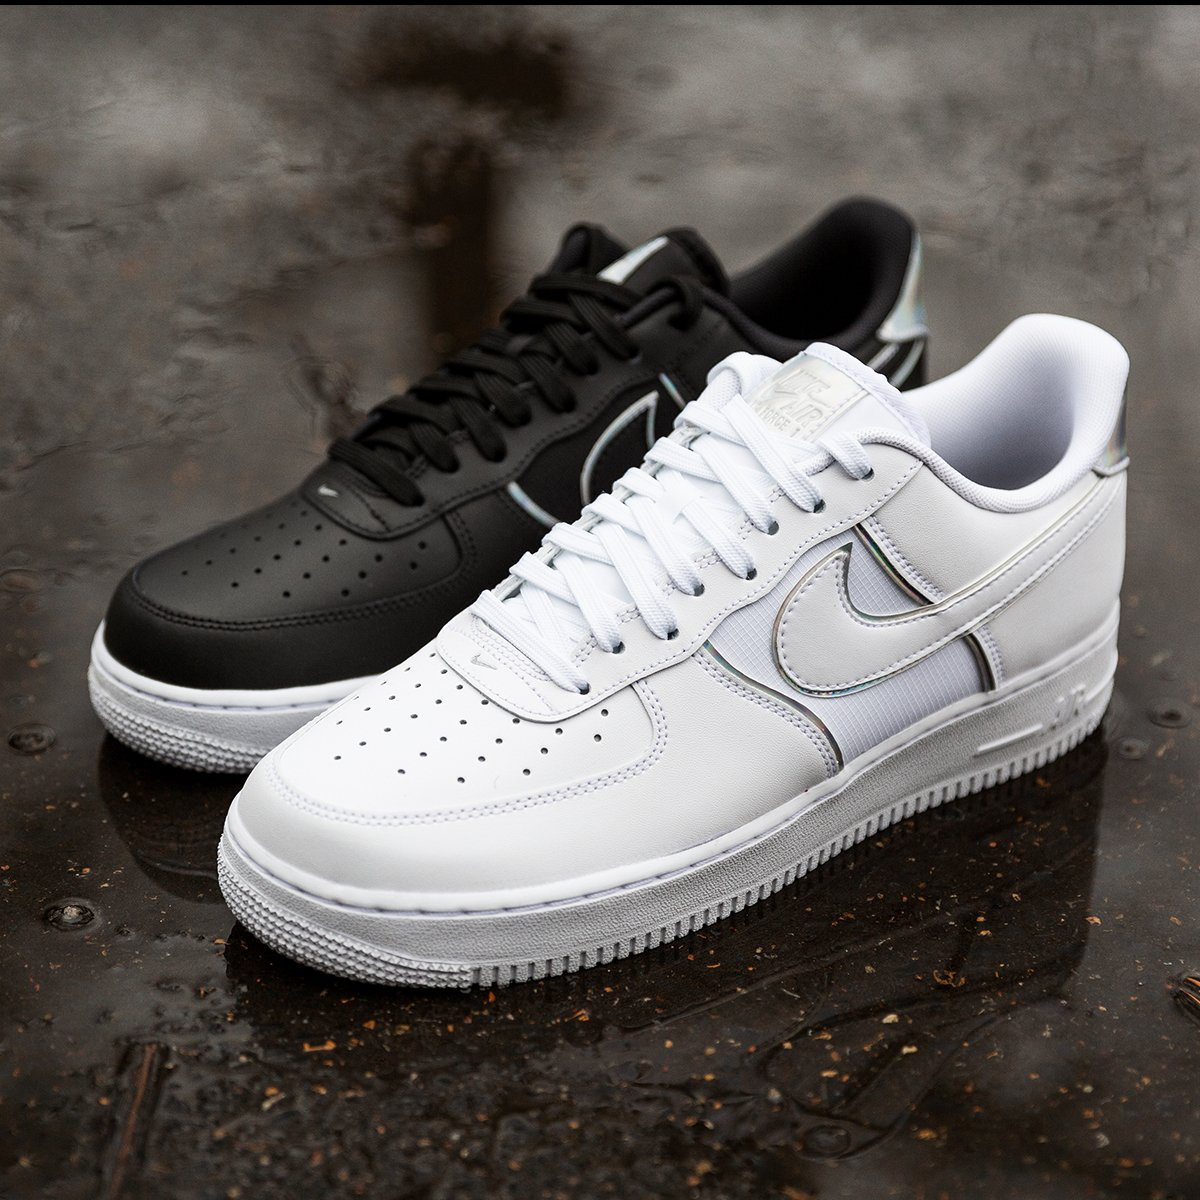 Shine on em in the Air Force